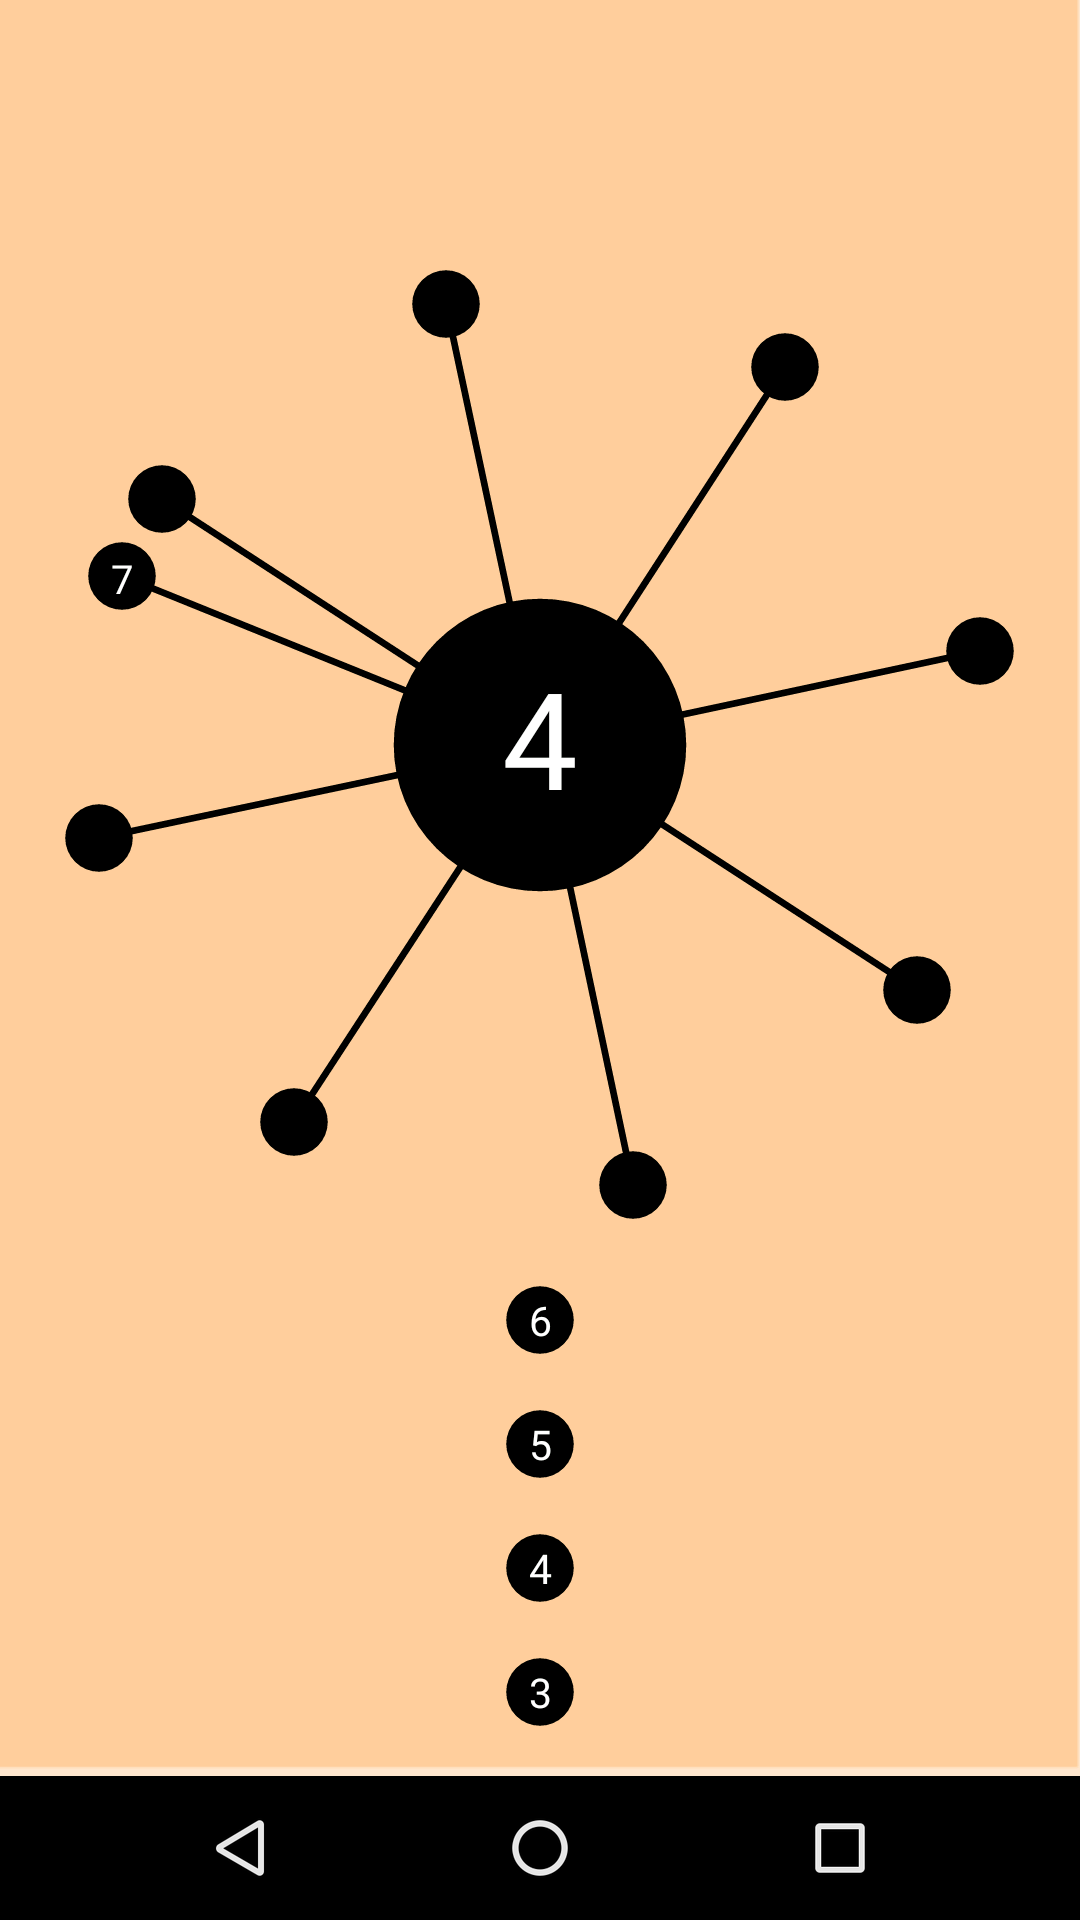 Circle Clicker for Android - APK Download - apkpure.com